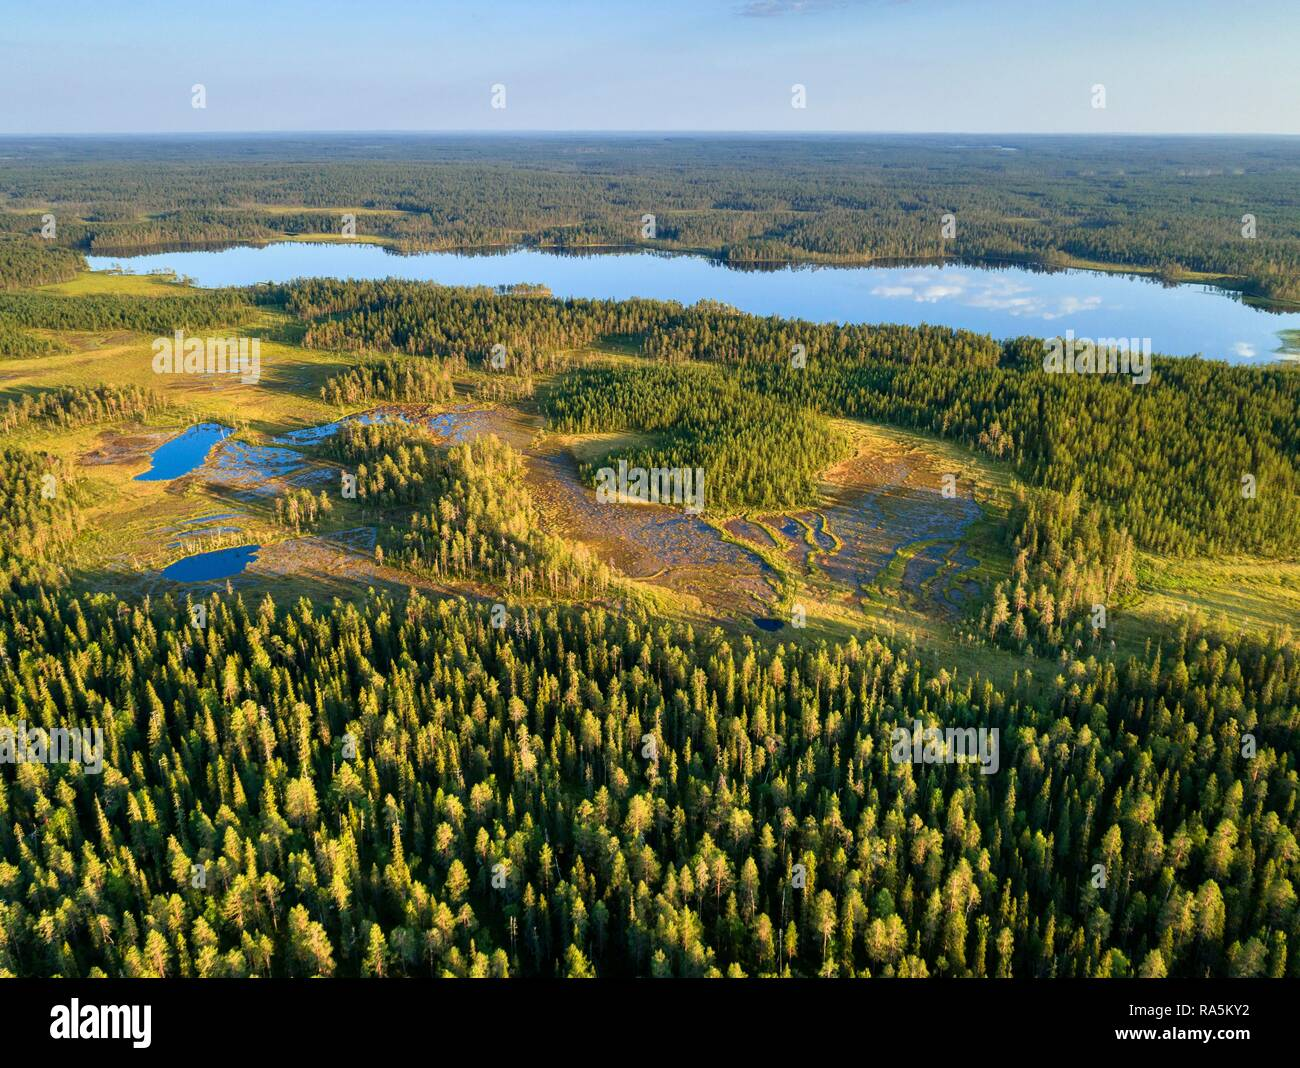 Drone shot, conifers in wetland with lake, boreal, arctic forest, Suomussalmi, Kainuu, Finland - Stock Image